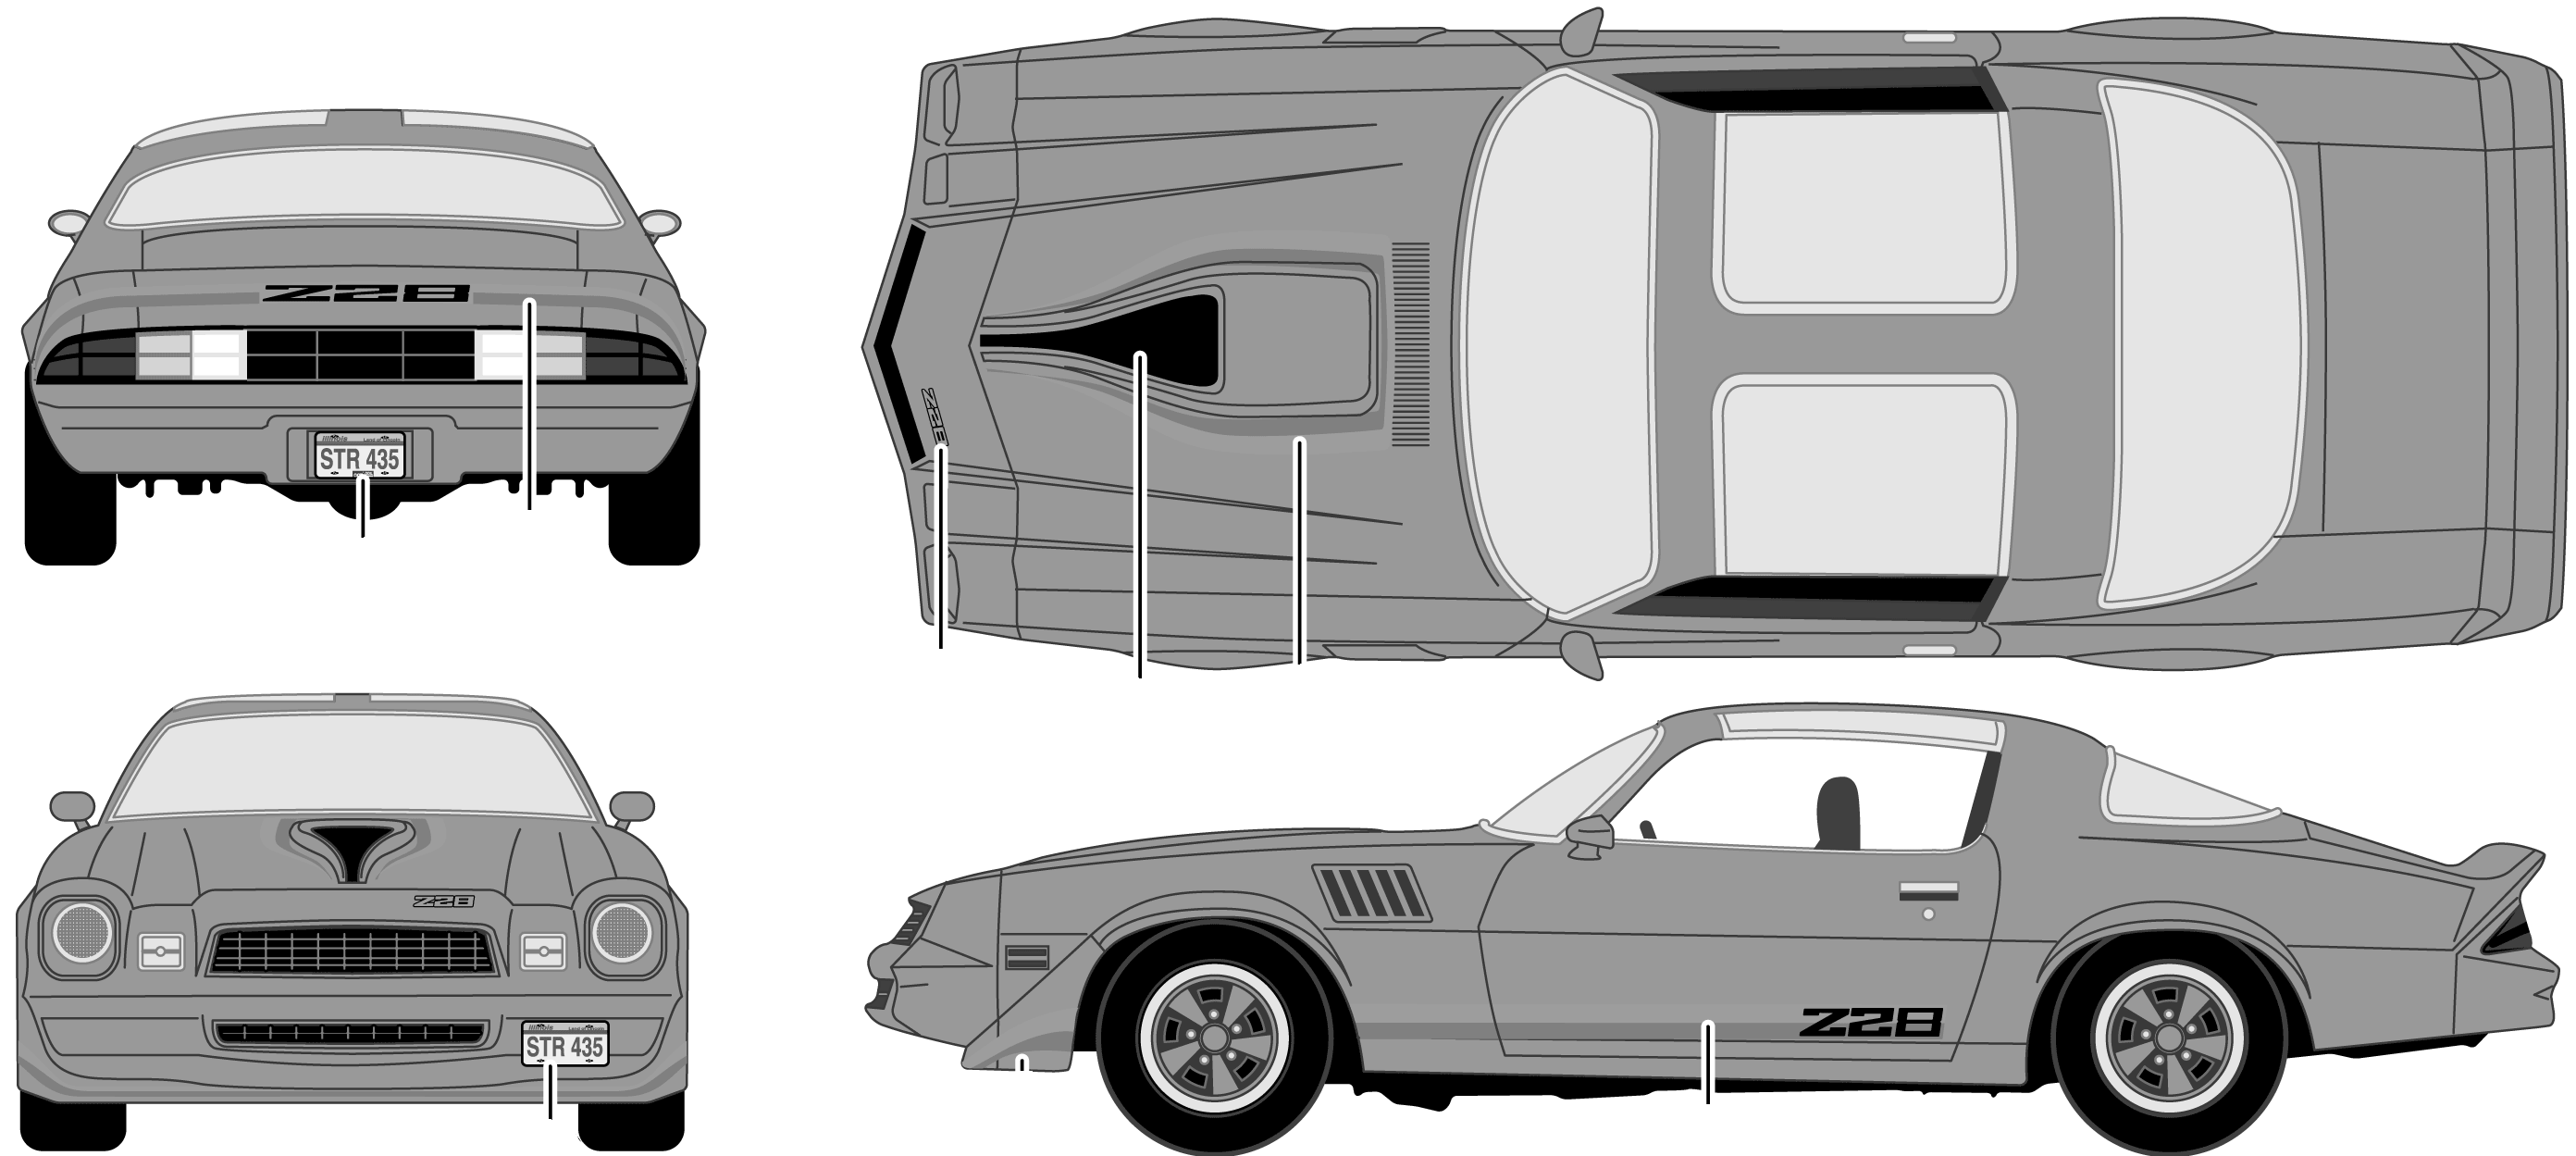 1979 chevrolet camaro z28 coupe blueprints free outlines chevrolet camaro z28 blueprints malvernweather Image collections